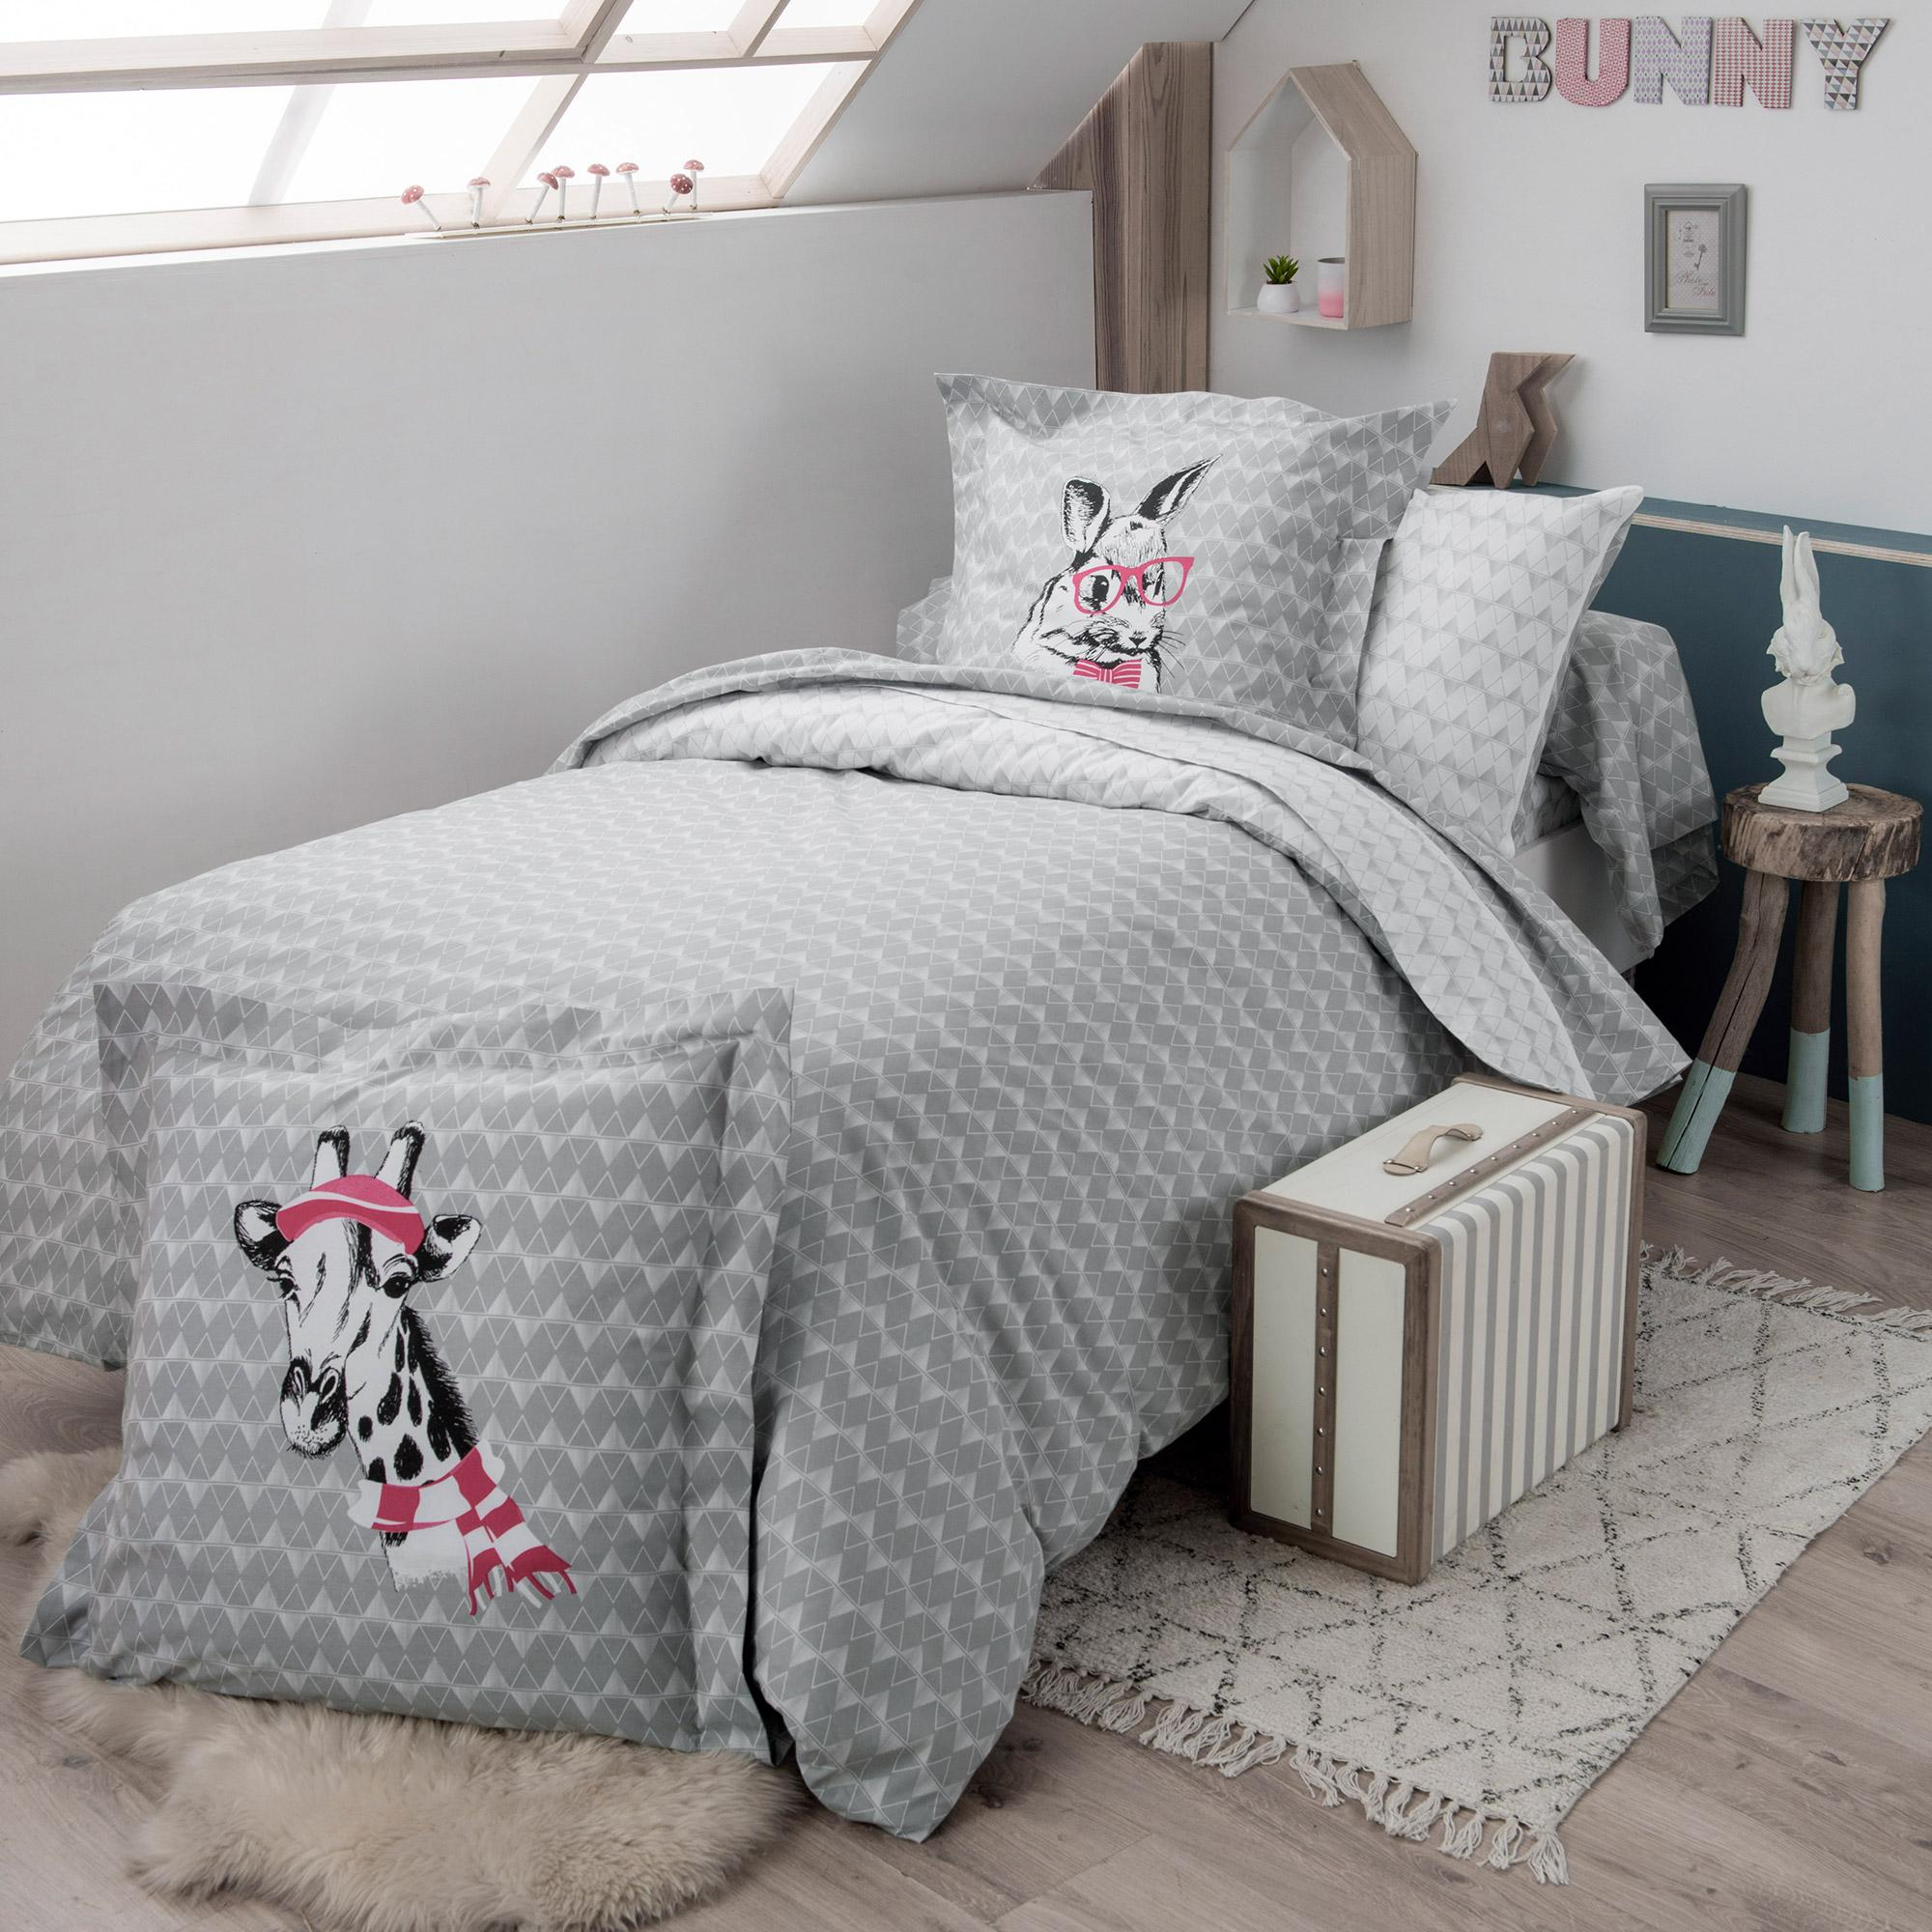 drap housse 90x190 cm 100 coton bunny linnea vente de. Black Bedroom Furniture Sets. Home Design Ideas